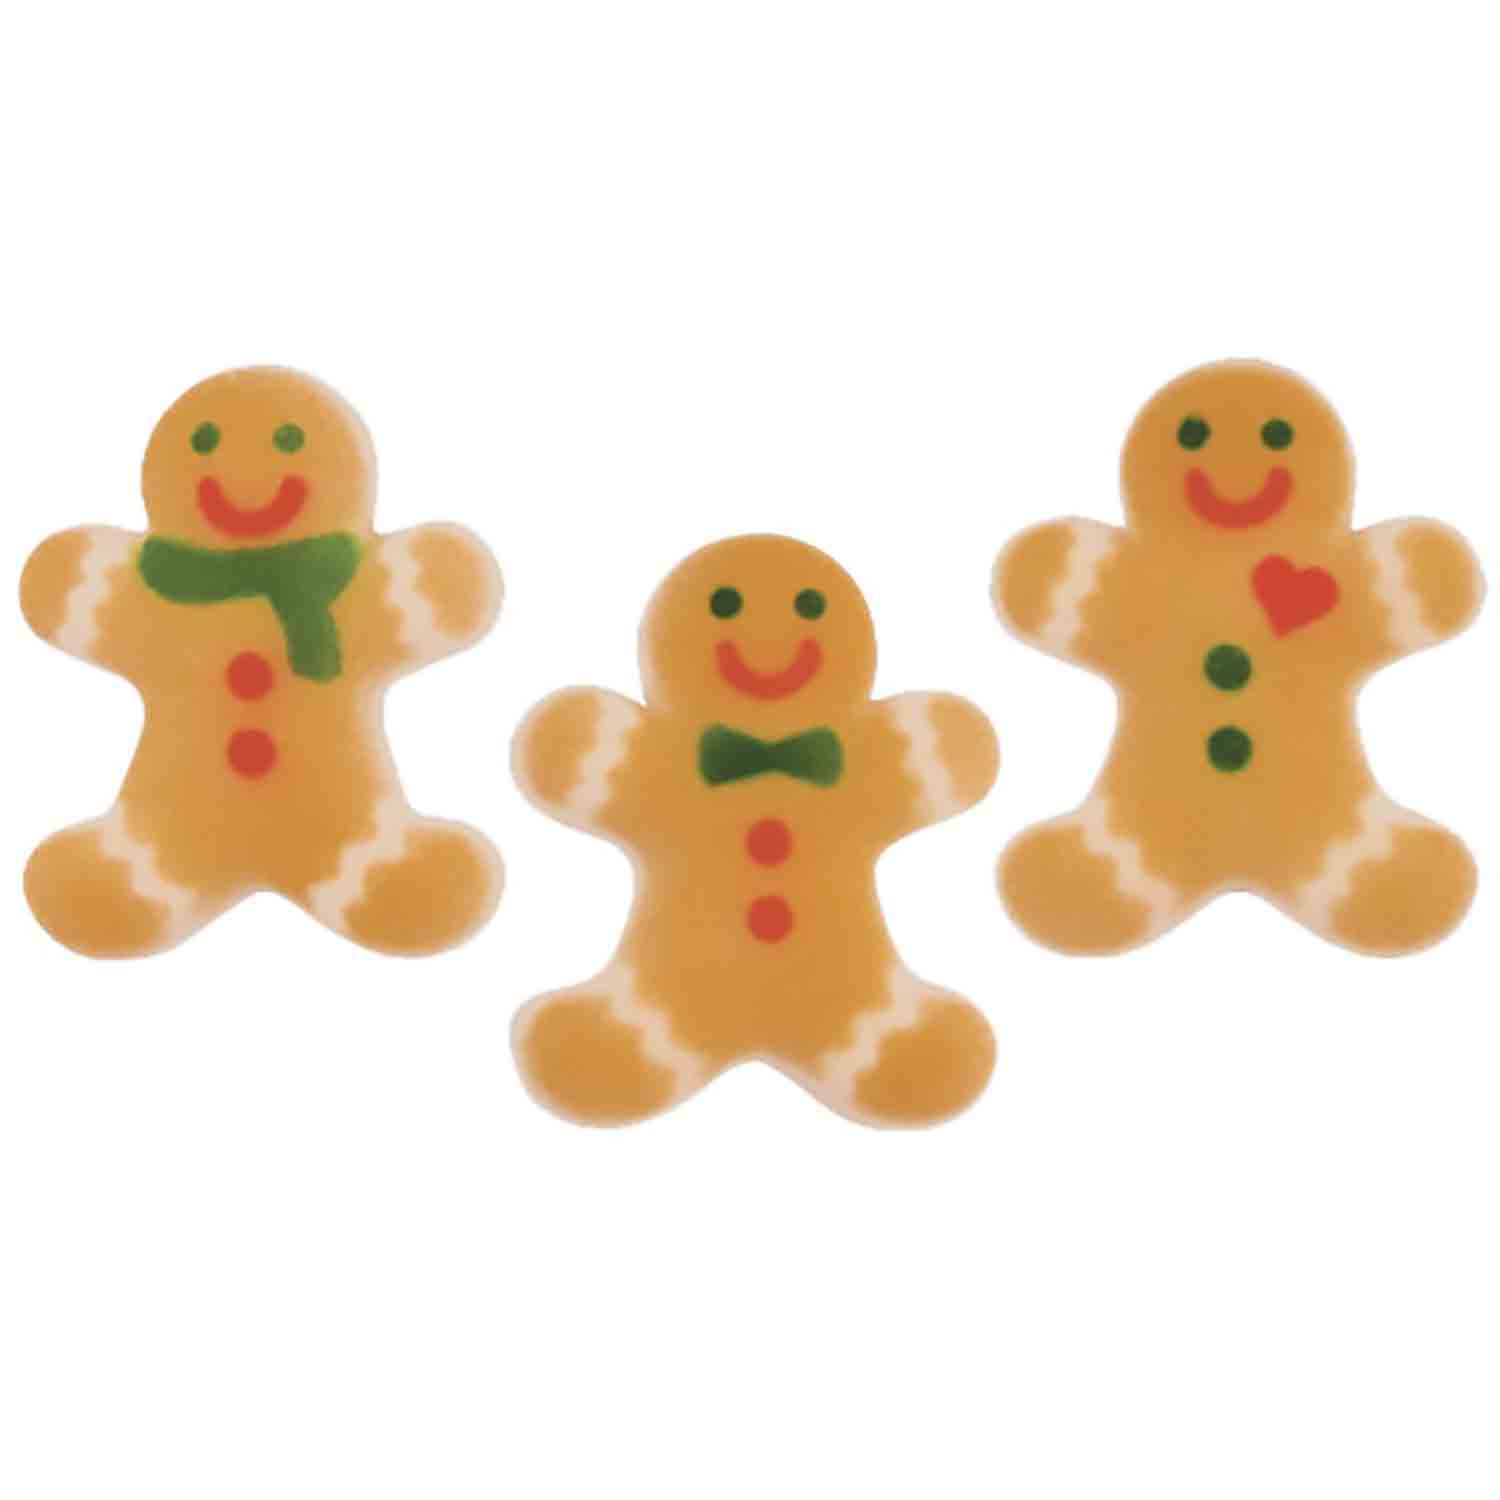 Dec-Ons® Molded Sugar - Gingerbread Man